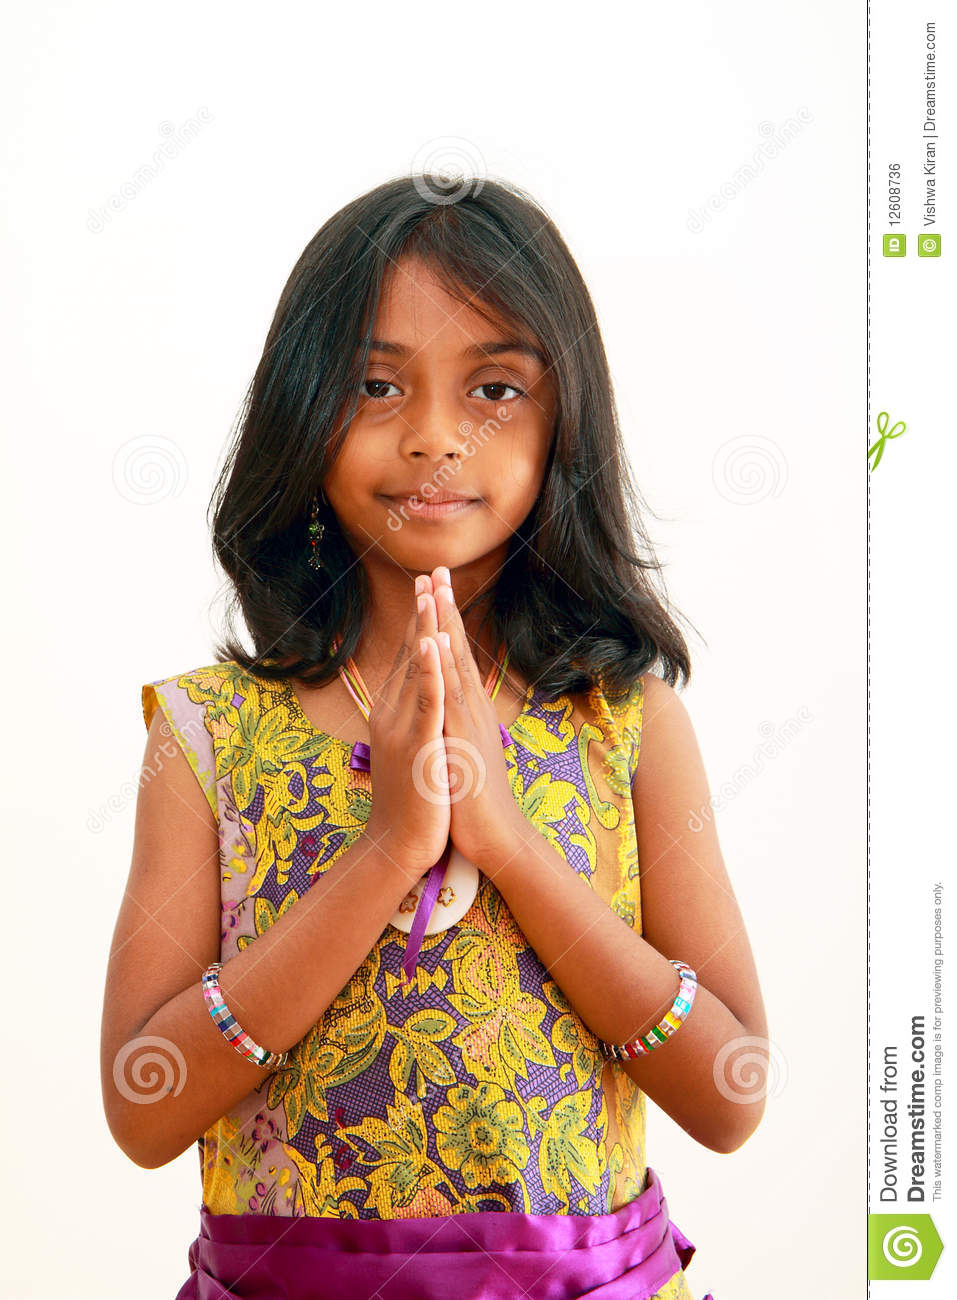 indian greeting welcome child traditional namaste asian smile hindu preview